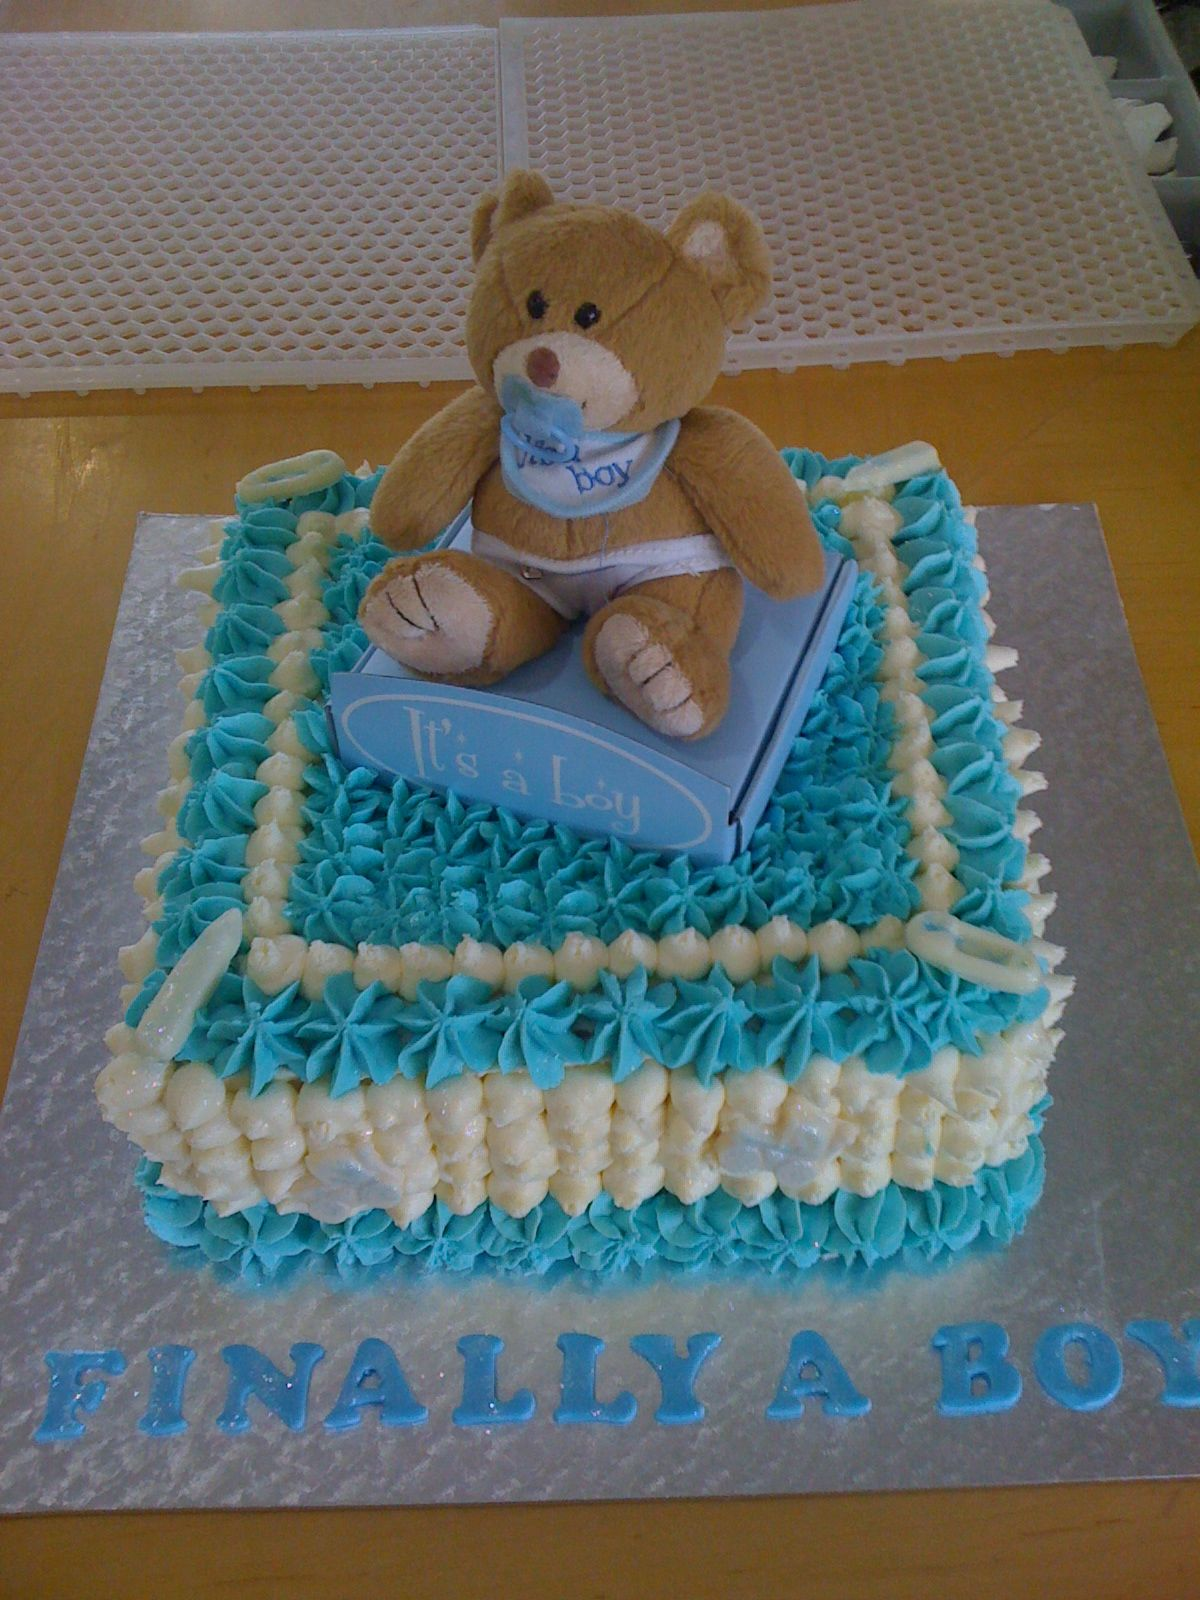 Baby Shower Boy Teddy Bear Cake Cake Decorating Community